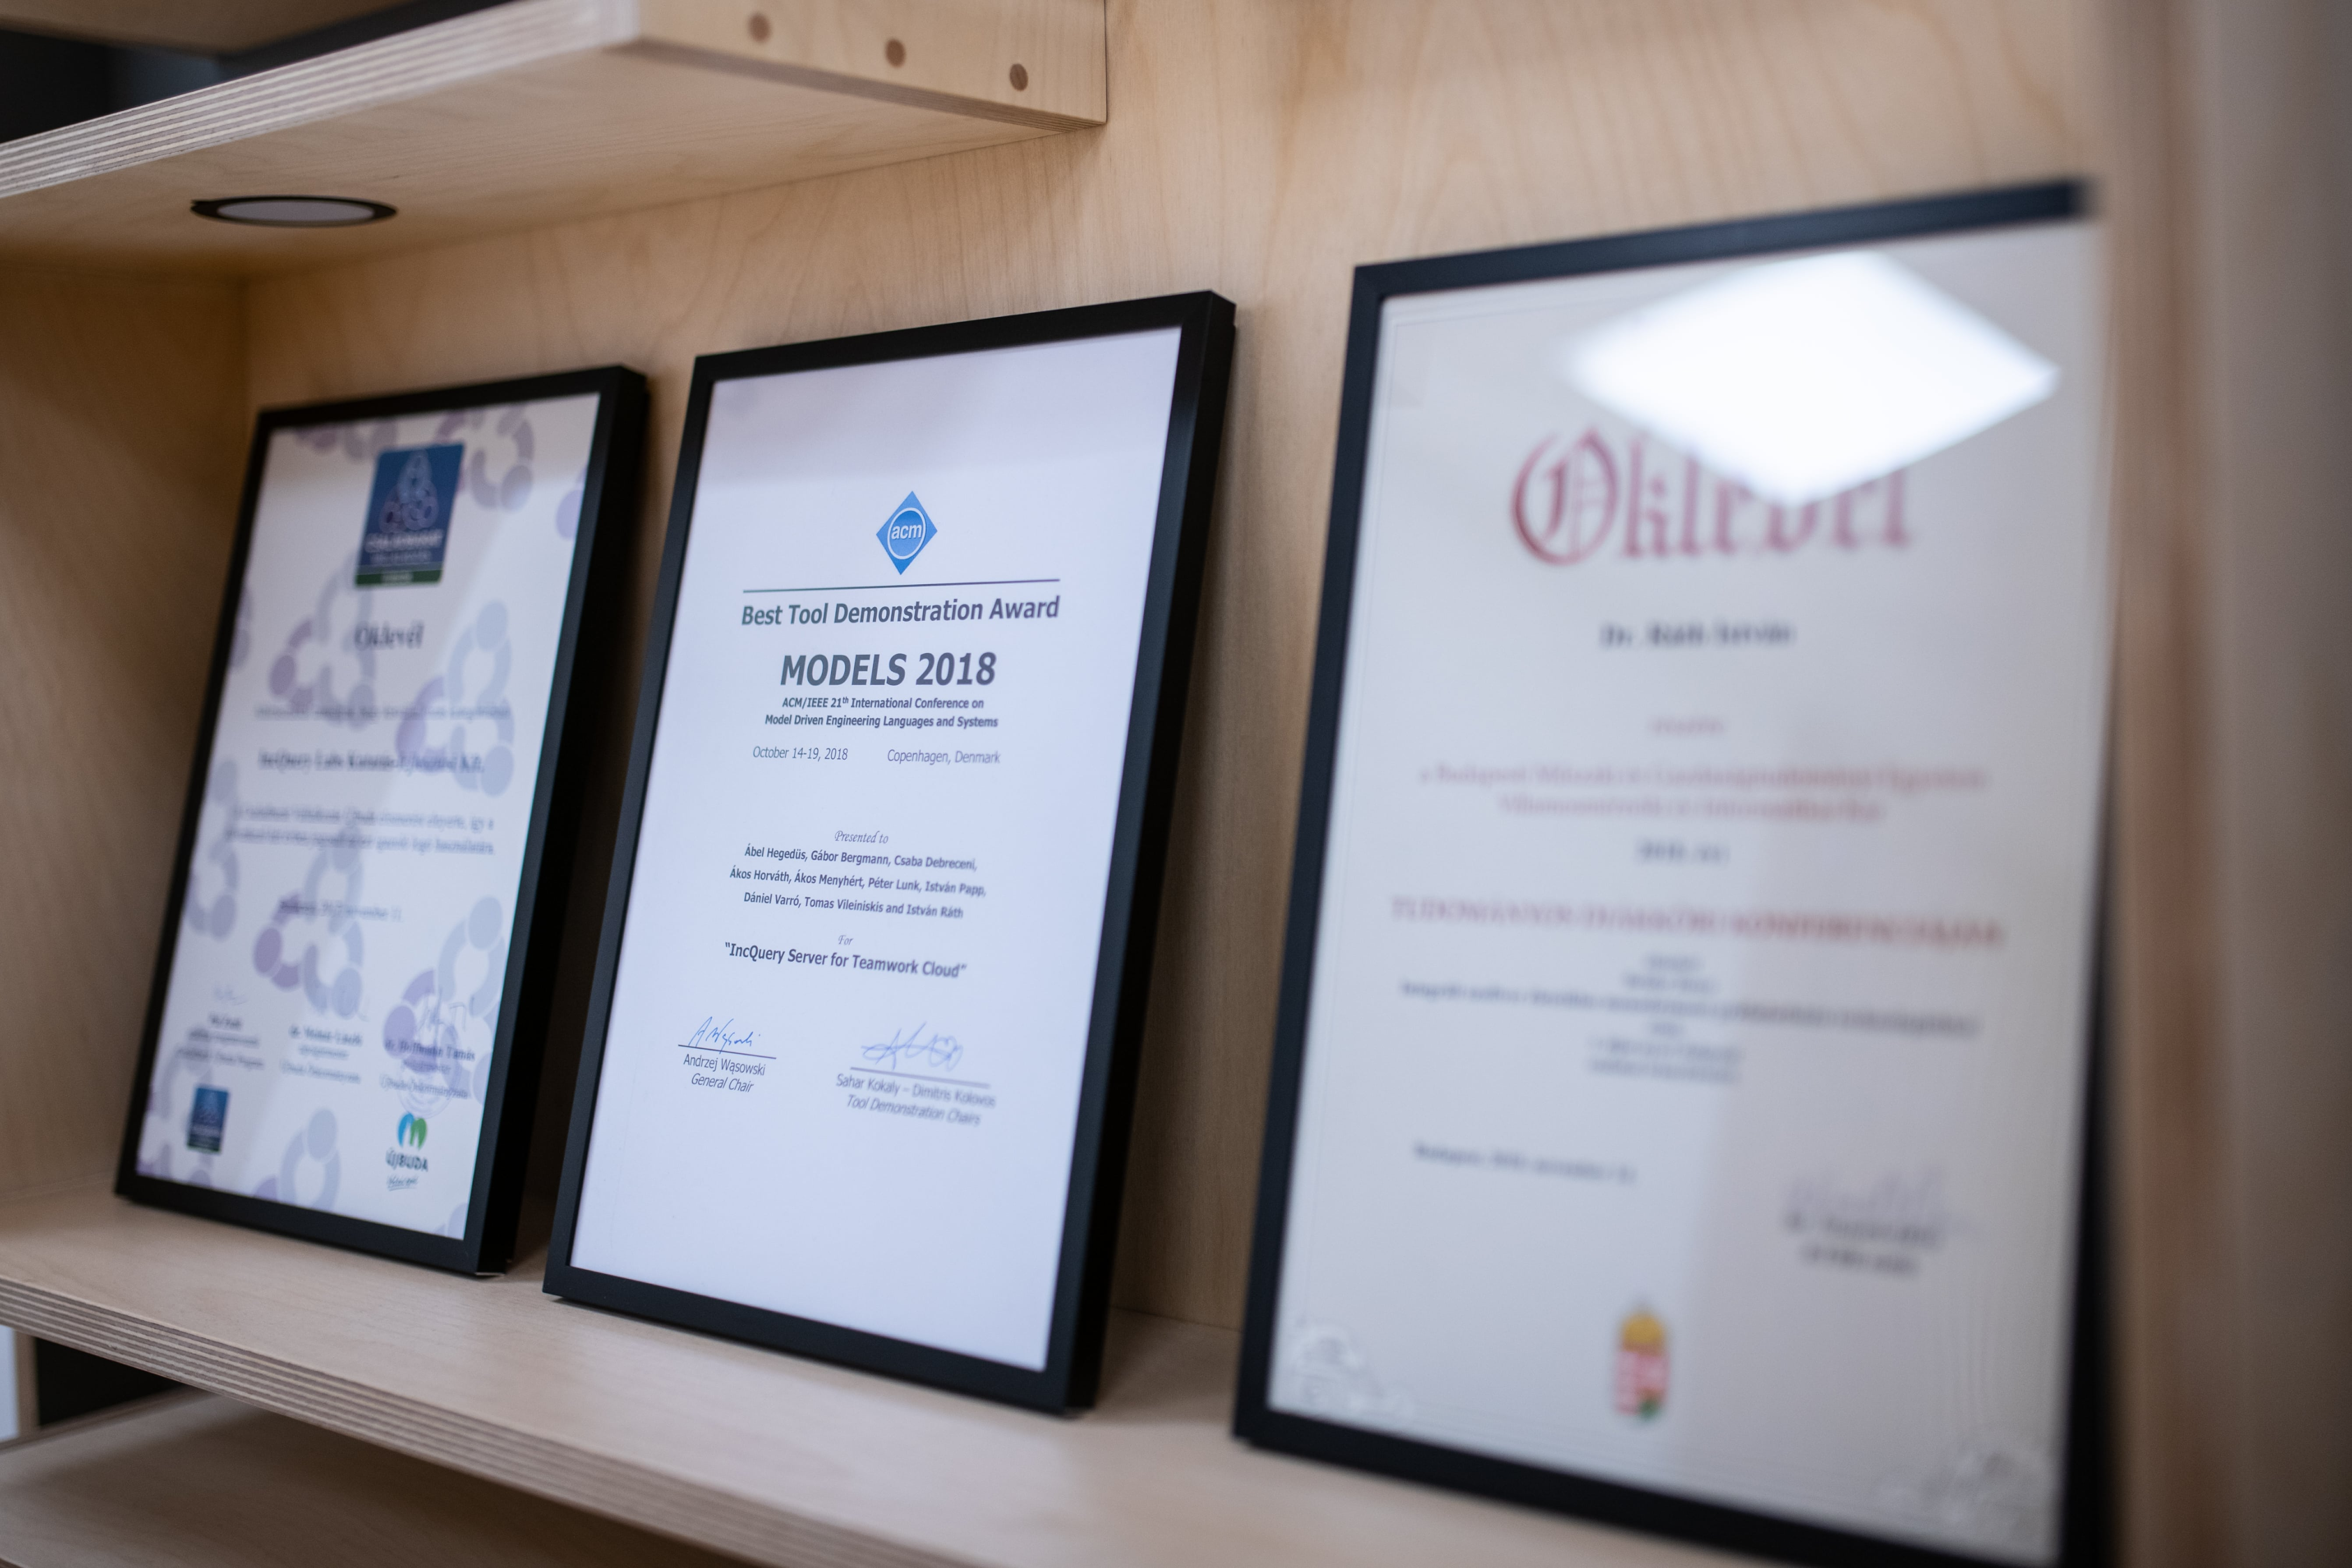 IncQuery Labs is member of the AUTOSAR, NI Alliance, OMG and ISO 9001